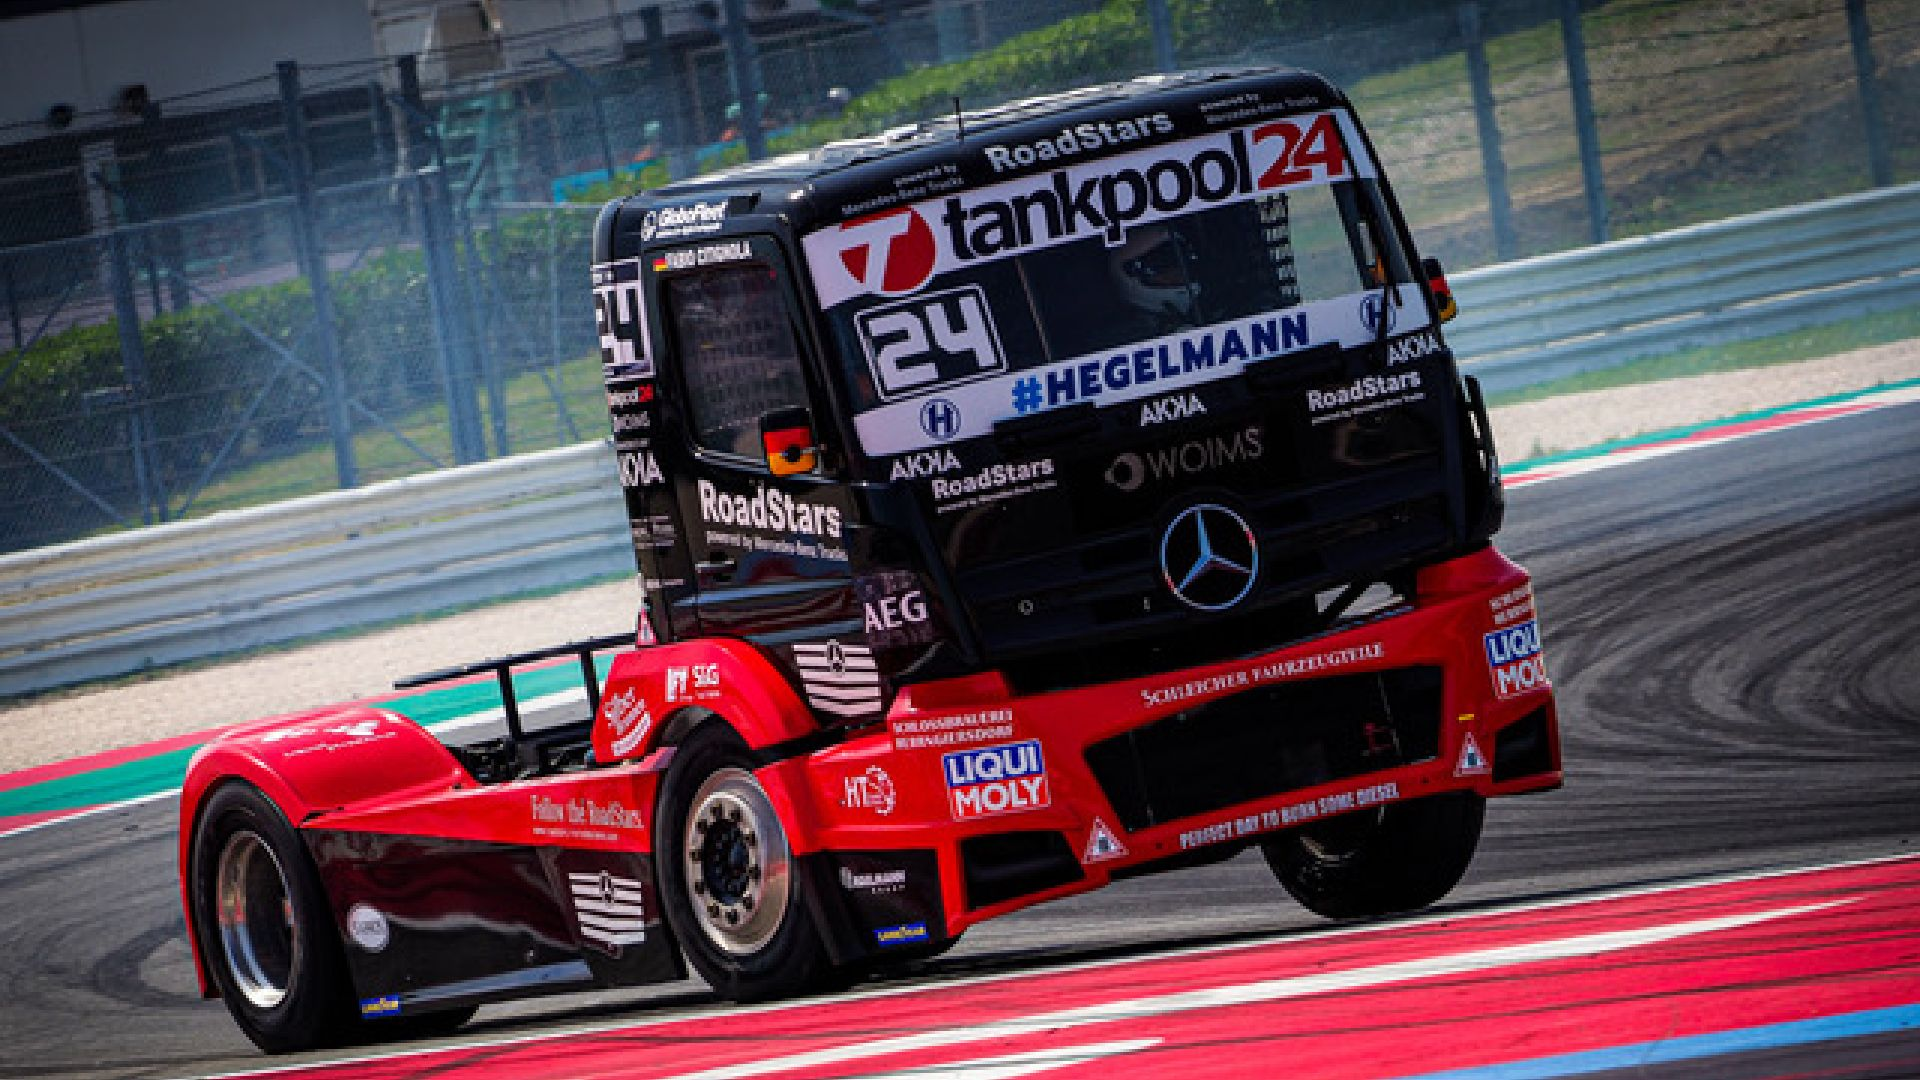 The Grand Prix Truck arrives in Misano for the last round of the season.